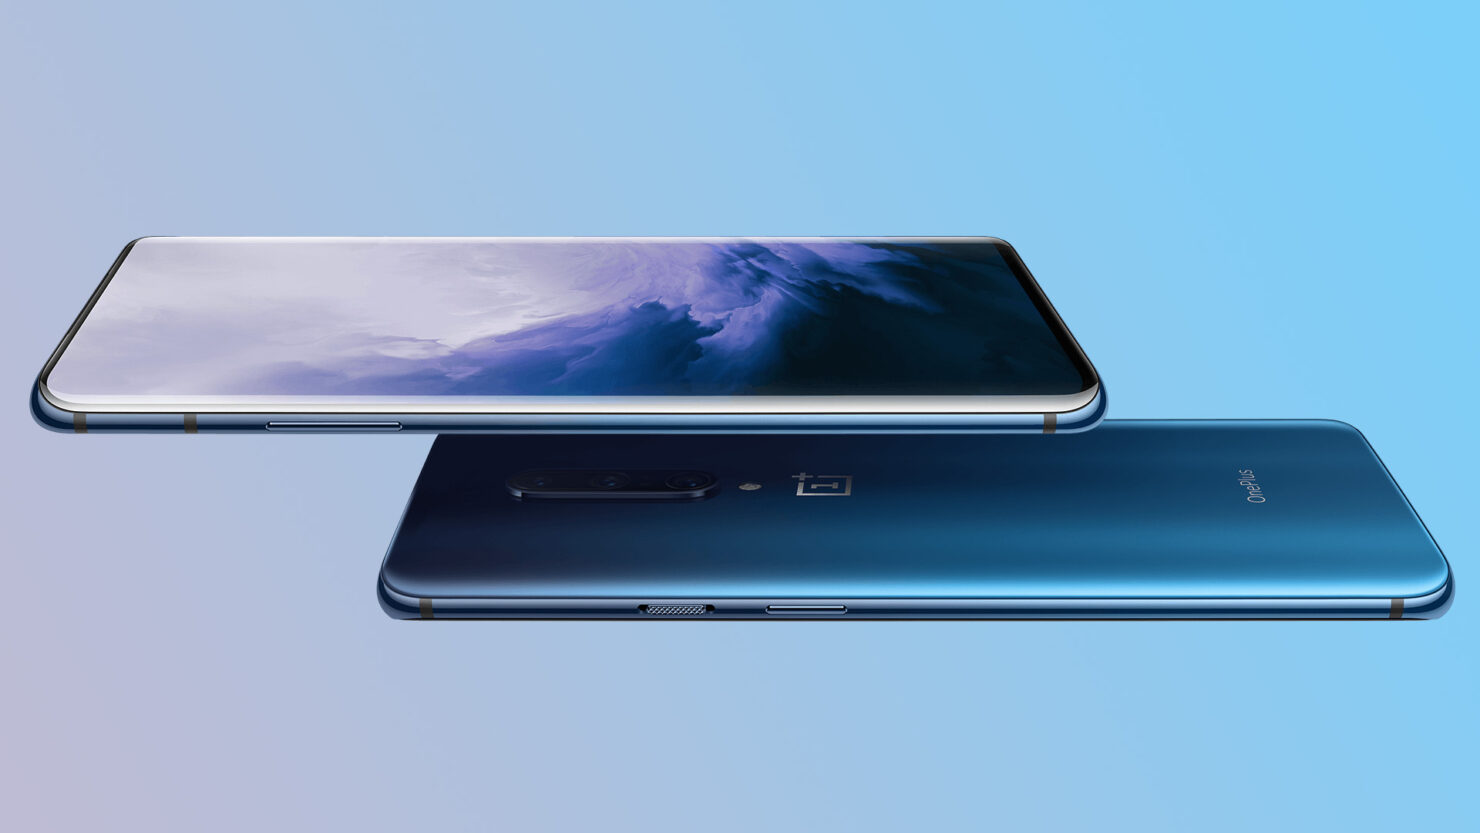 OnePlus 7 Pro 5G is finally coming to the U.S.